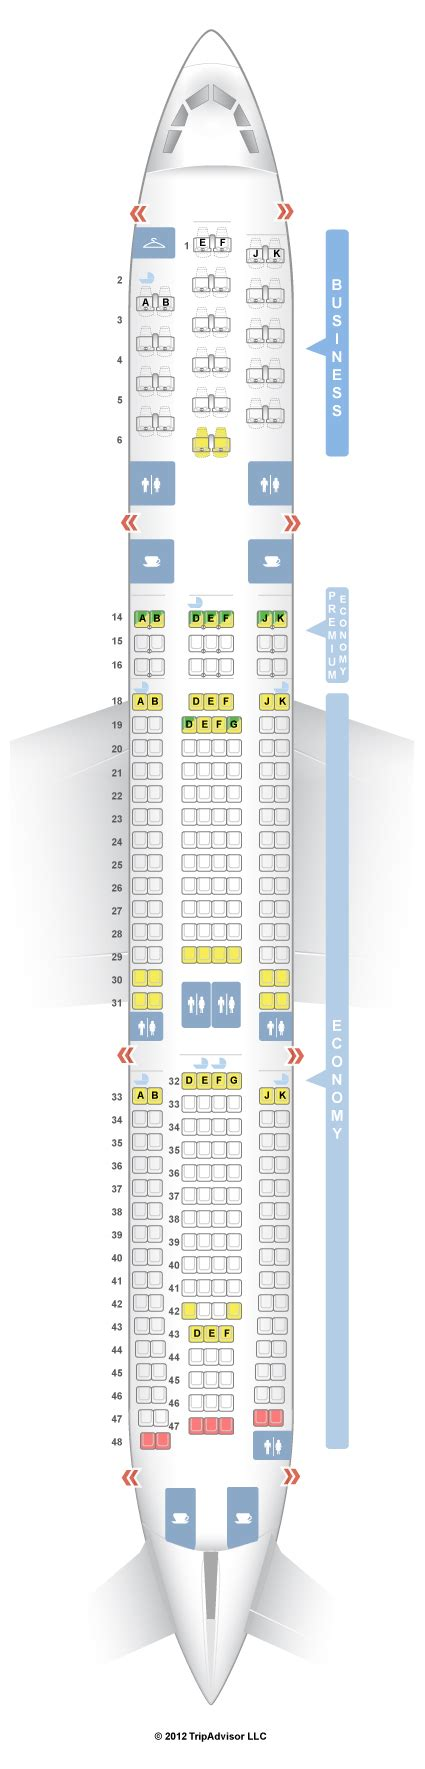 plan siege air seatguru seat map air airbus a340 300 343